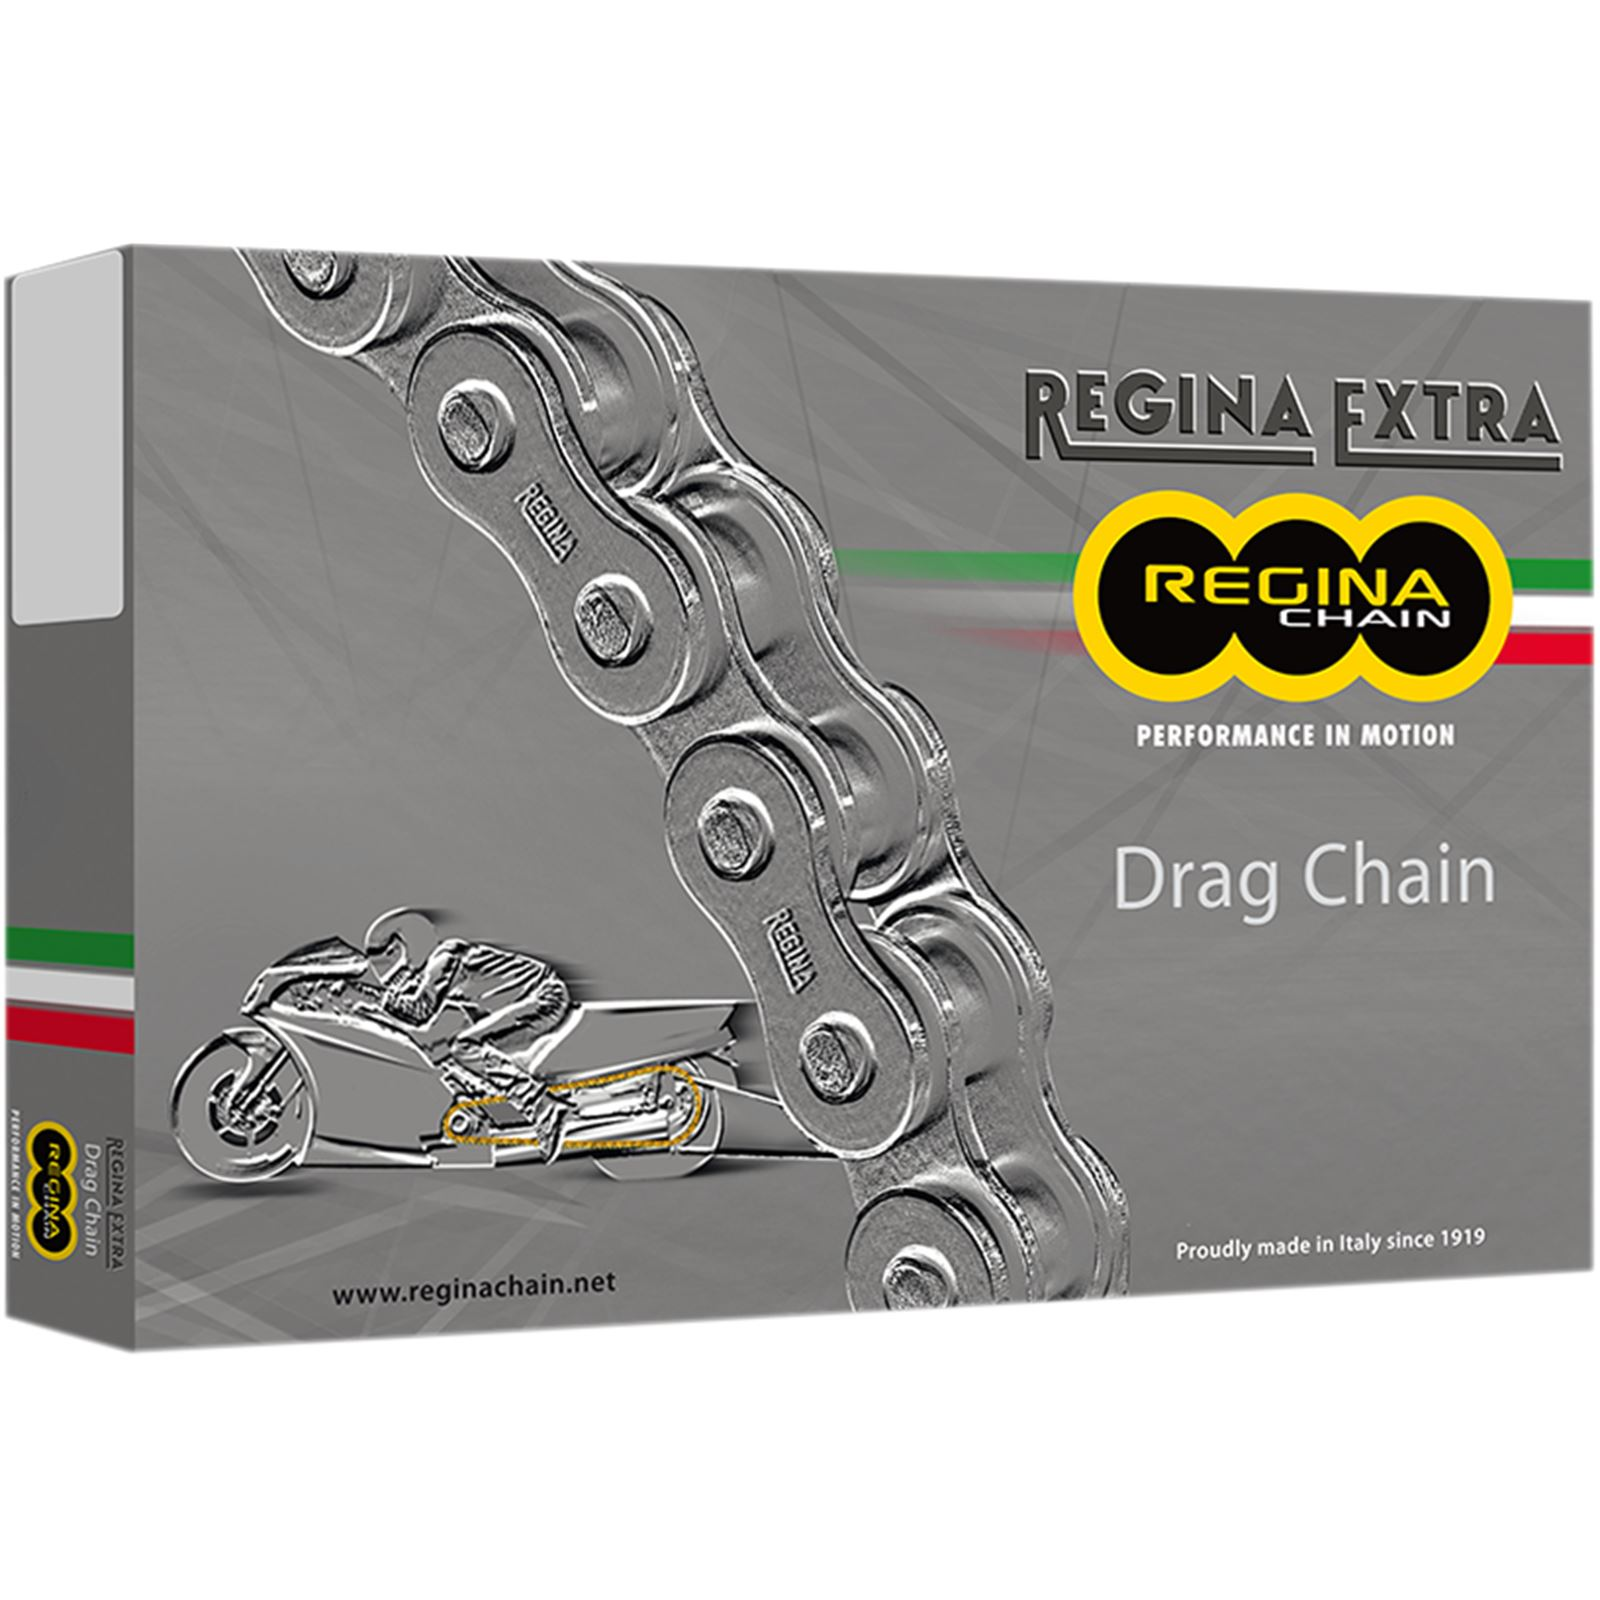 Regina 520 DR -Extra - Drag Racing Chain - 140 Links